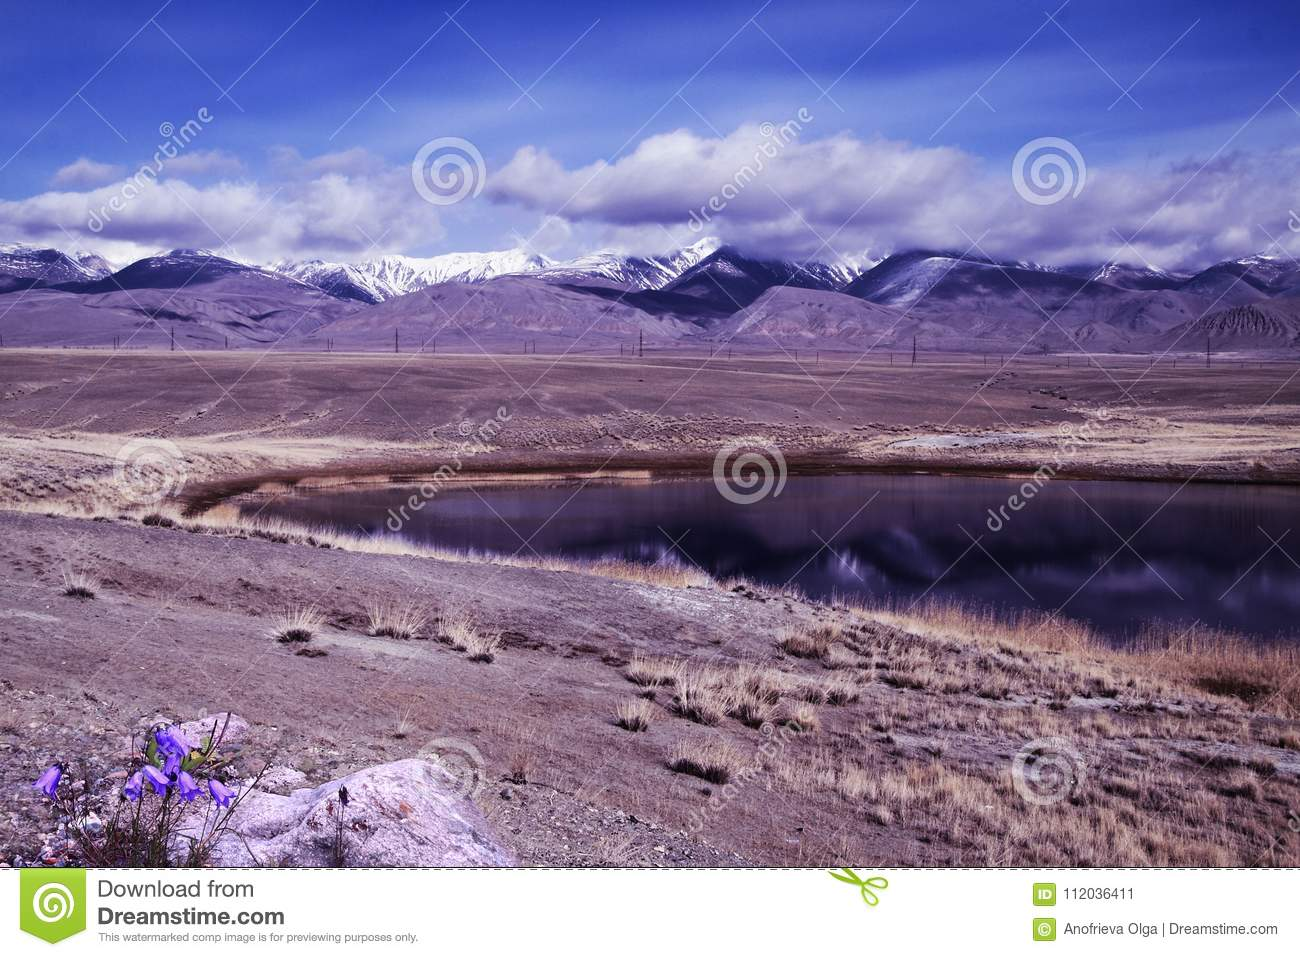 Violet handbells and lilac lake with reflection of mountain